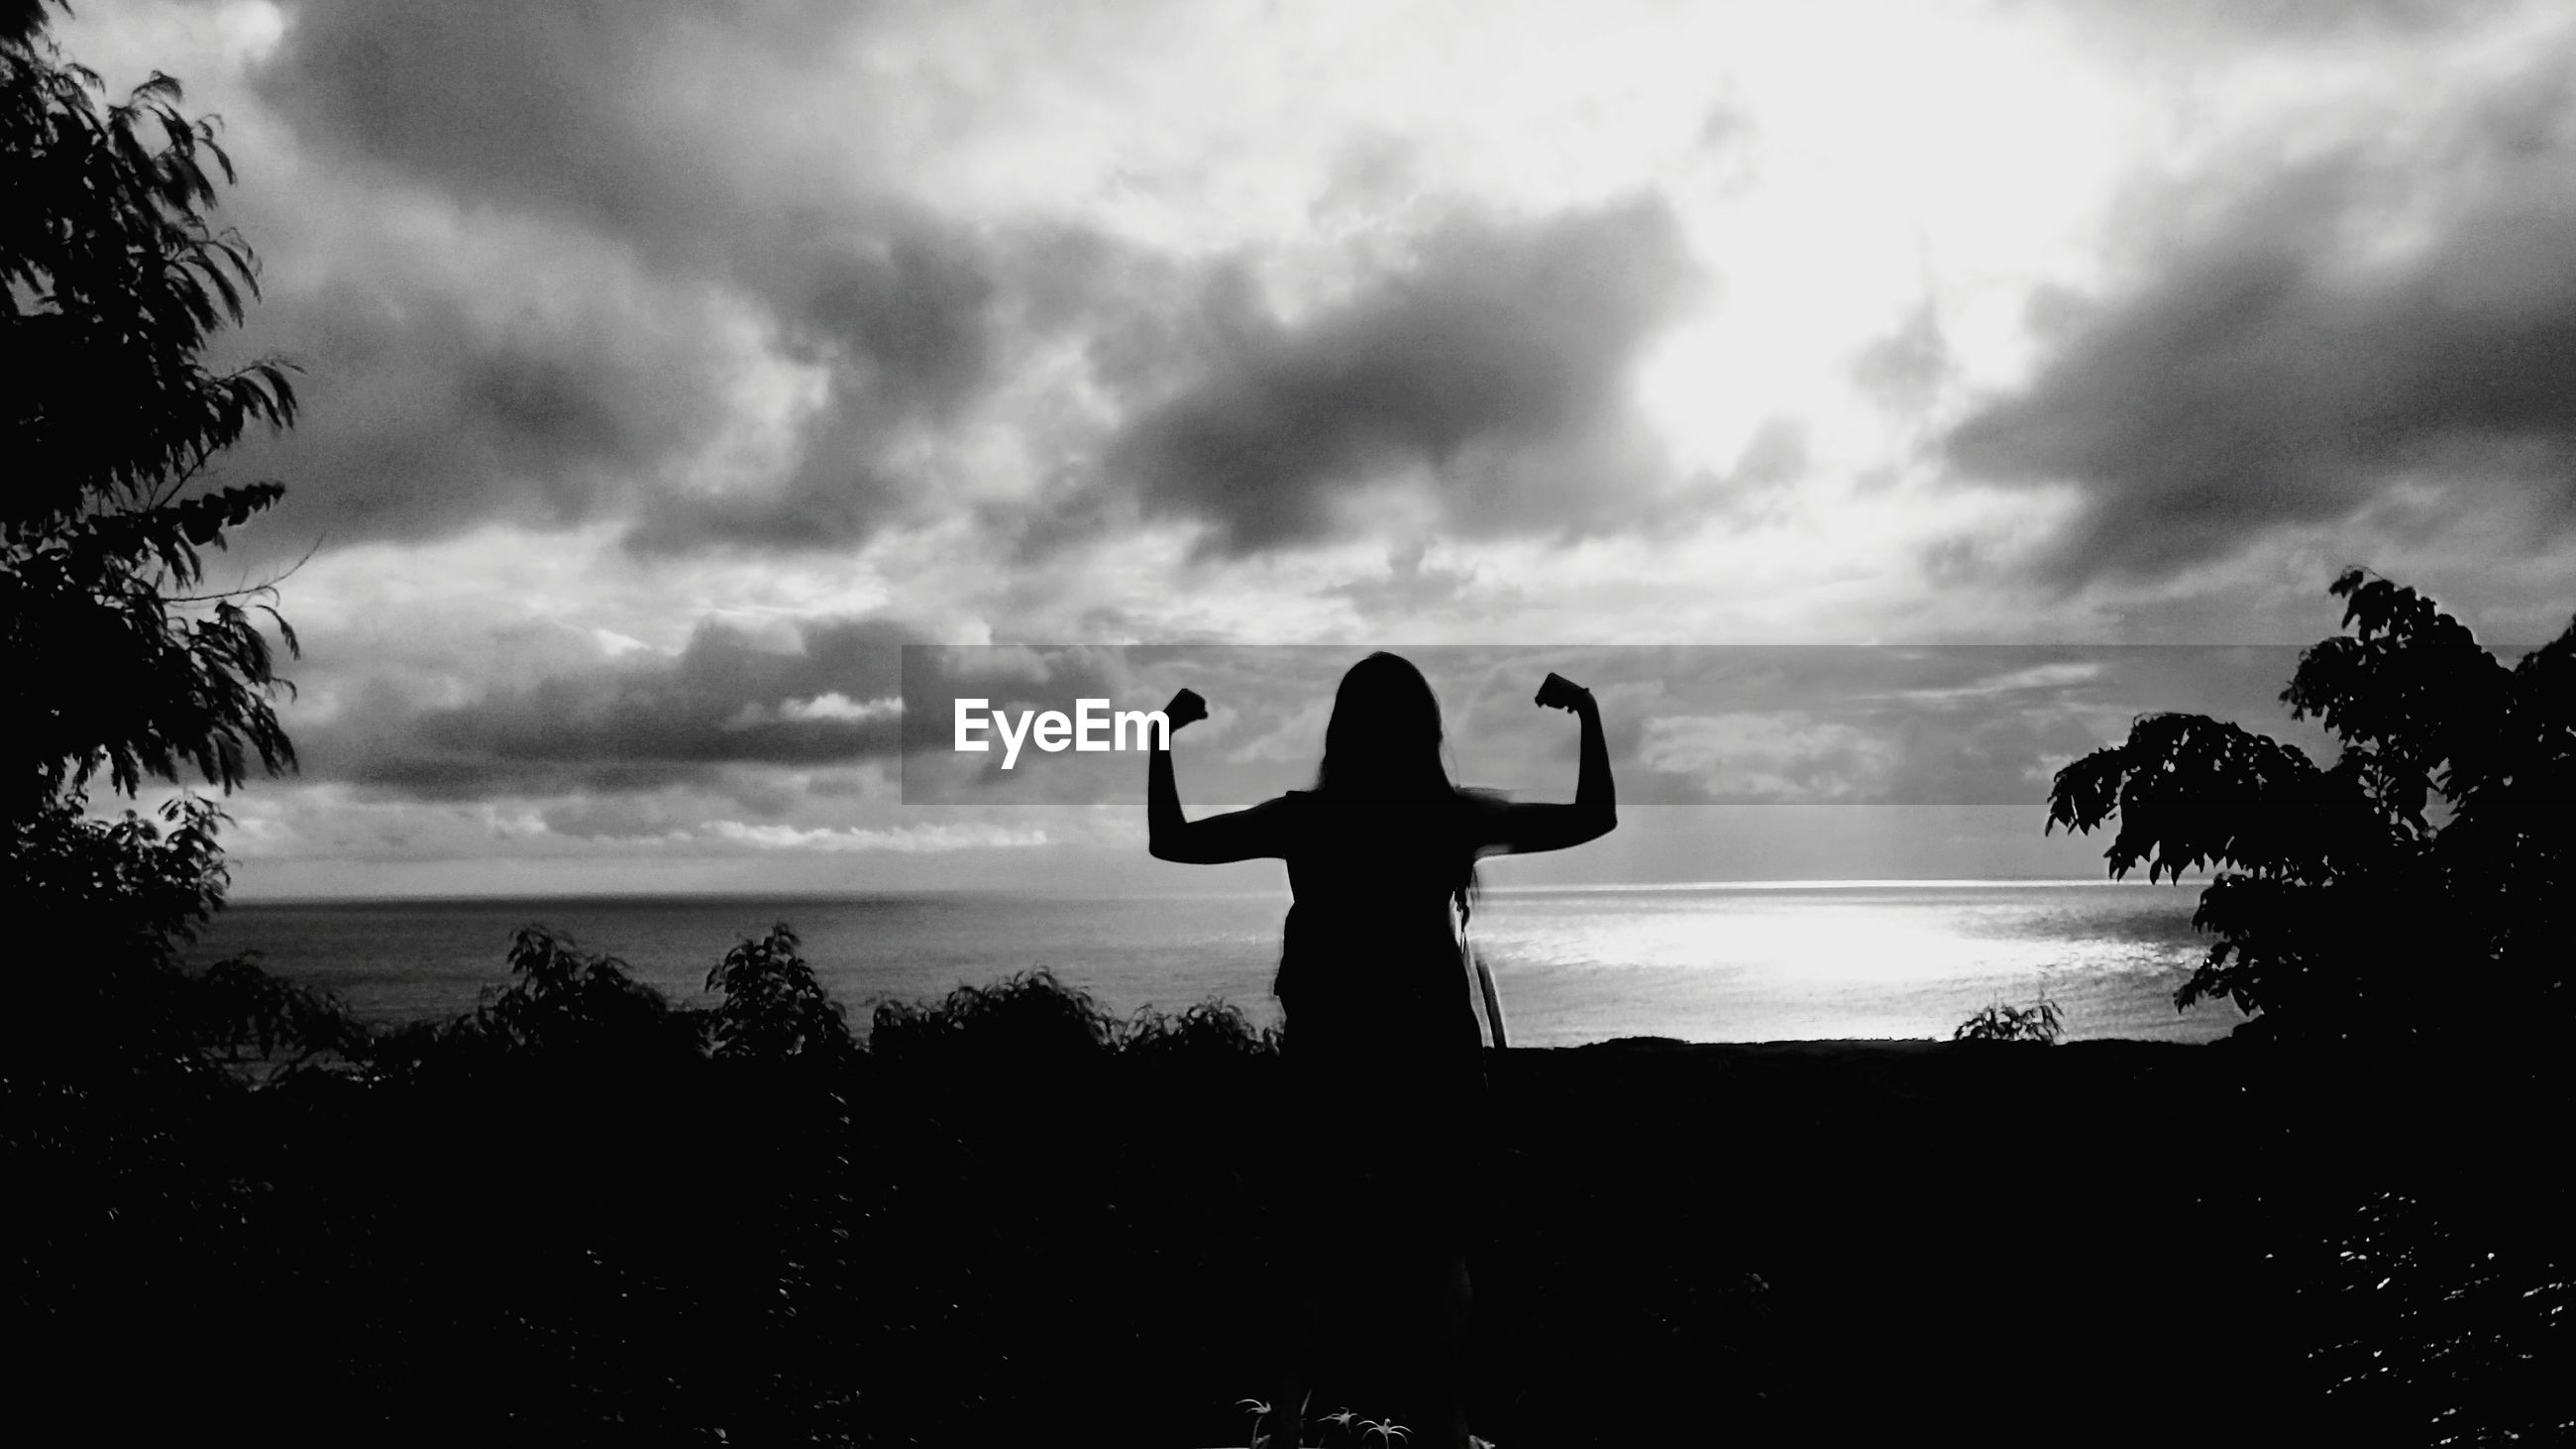 Silhouette of woman flexing muscles on field by sea against cloudy sky